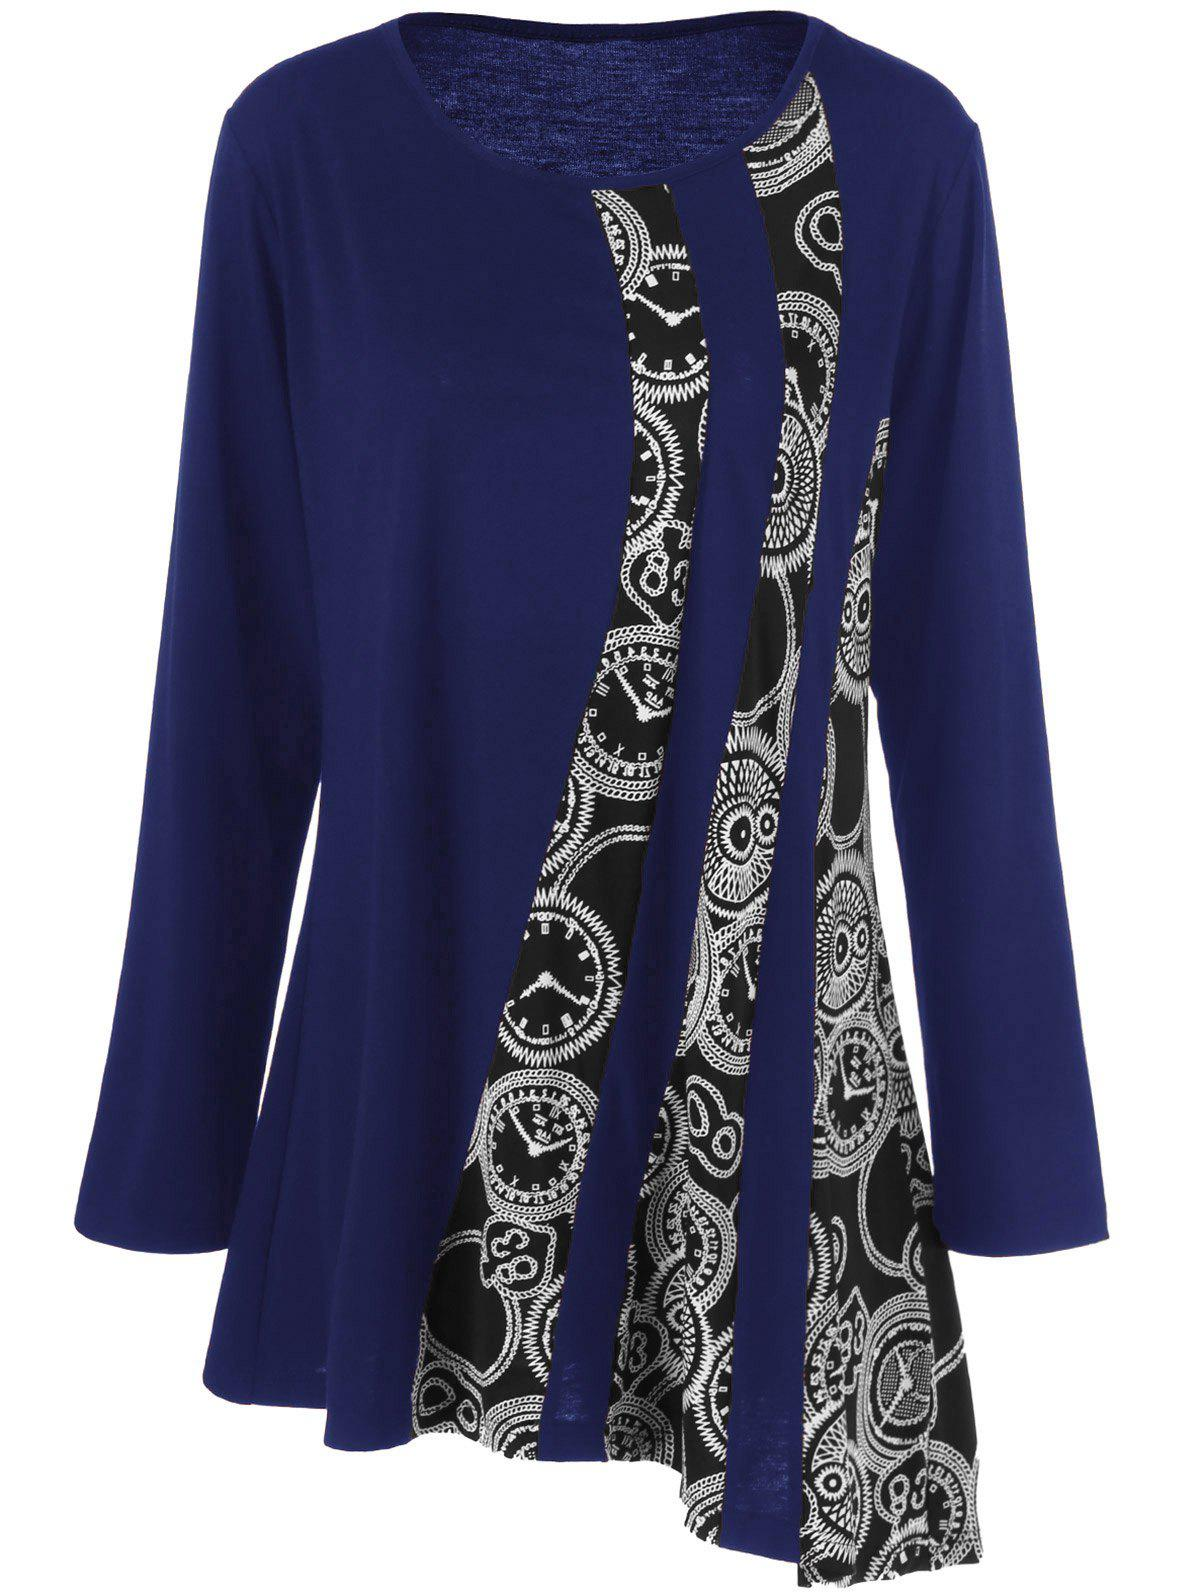 Plus Size Printed Asymmetric Tunic T-ShirtWOMEN<br><br>Size: 5XL; Color: BLUE; Material: Polyester,Spandex; Shirt Length: Long; Sleeve Length: Full; Collar: Scoop Neck; Style: Fashion; Season: Fall,Spring; Pattern Type: Print; Weight: 0.3200kg; Package Contents: 1 x T-Shirt;